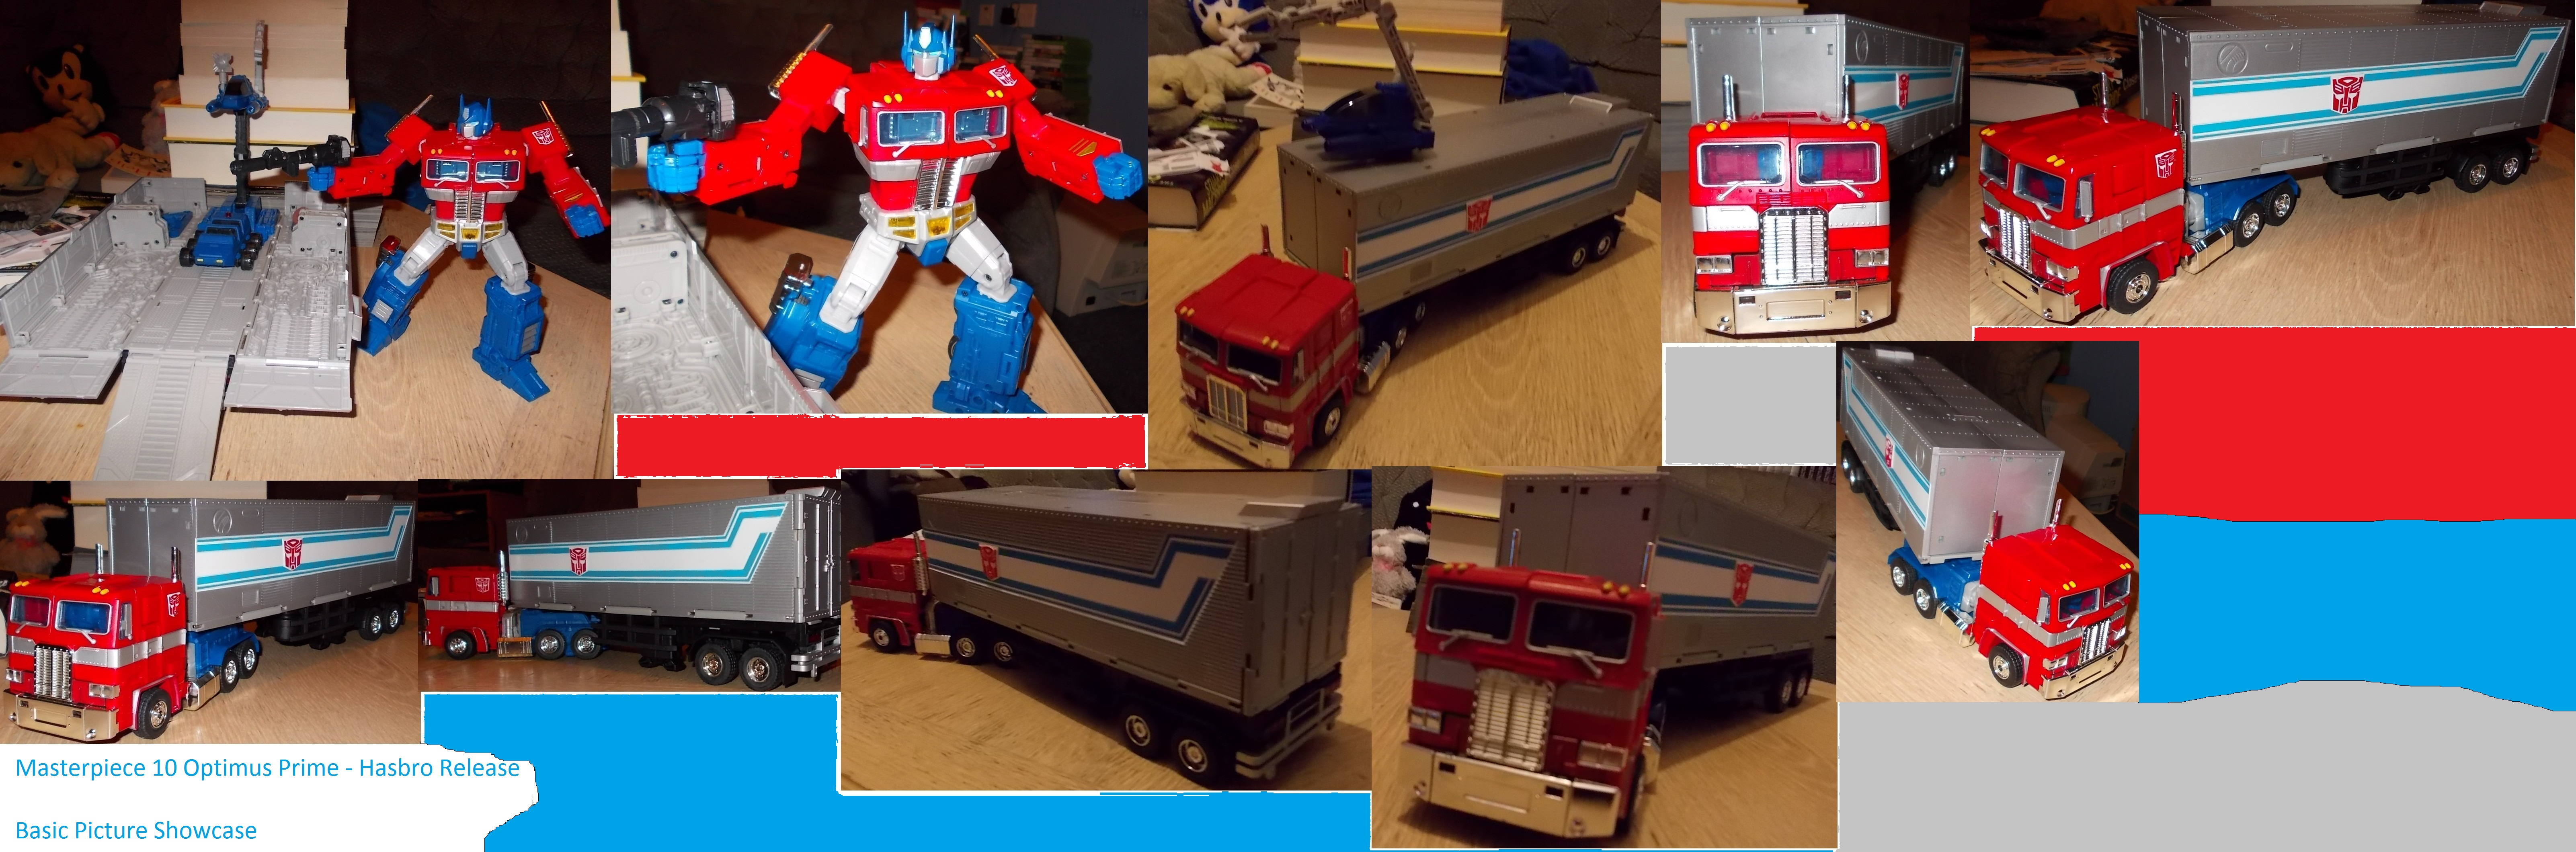 Transformers Masterpiece 10 Optimus Prime Showcase By Reinahw On Mp Convoy